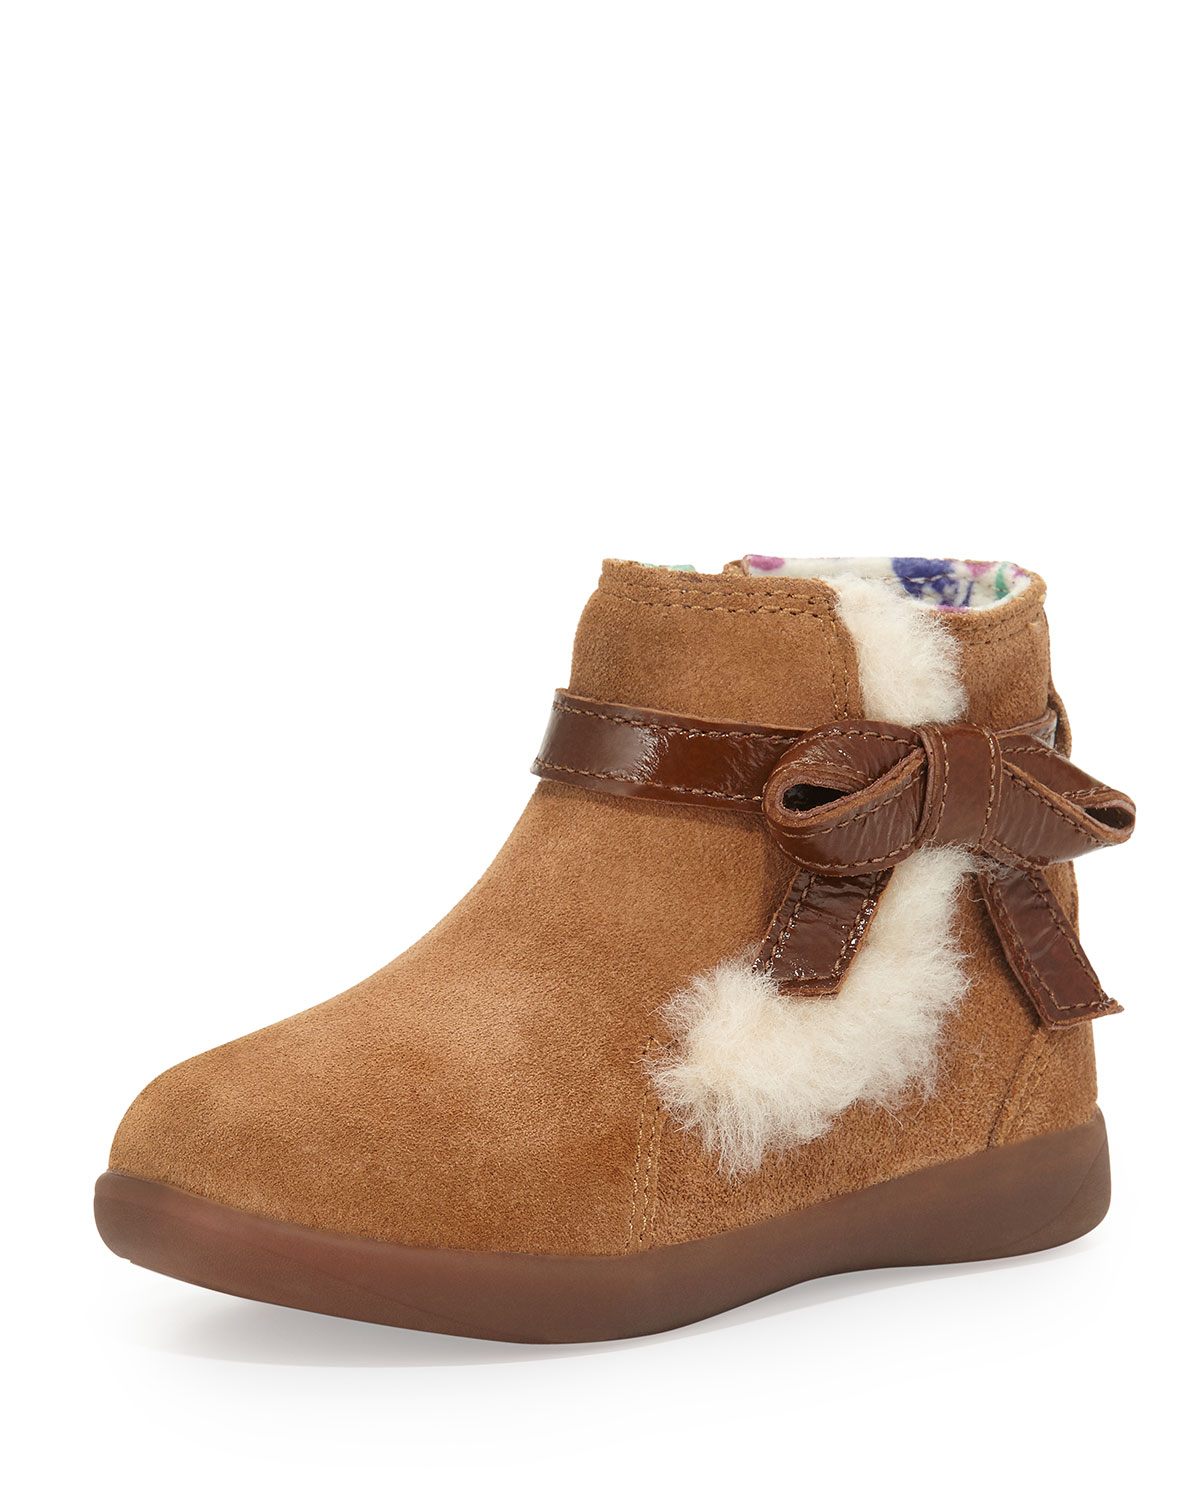 ad43d44e37c Libbie Suede Bootie with Bow, Chestnut, Toddler